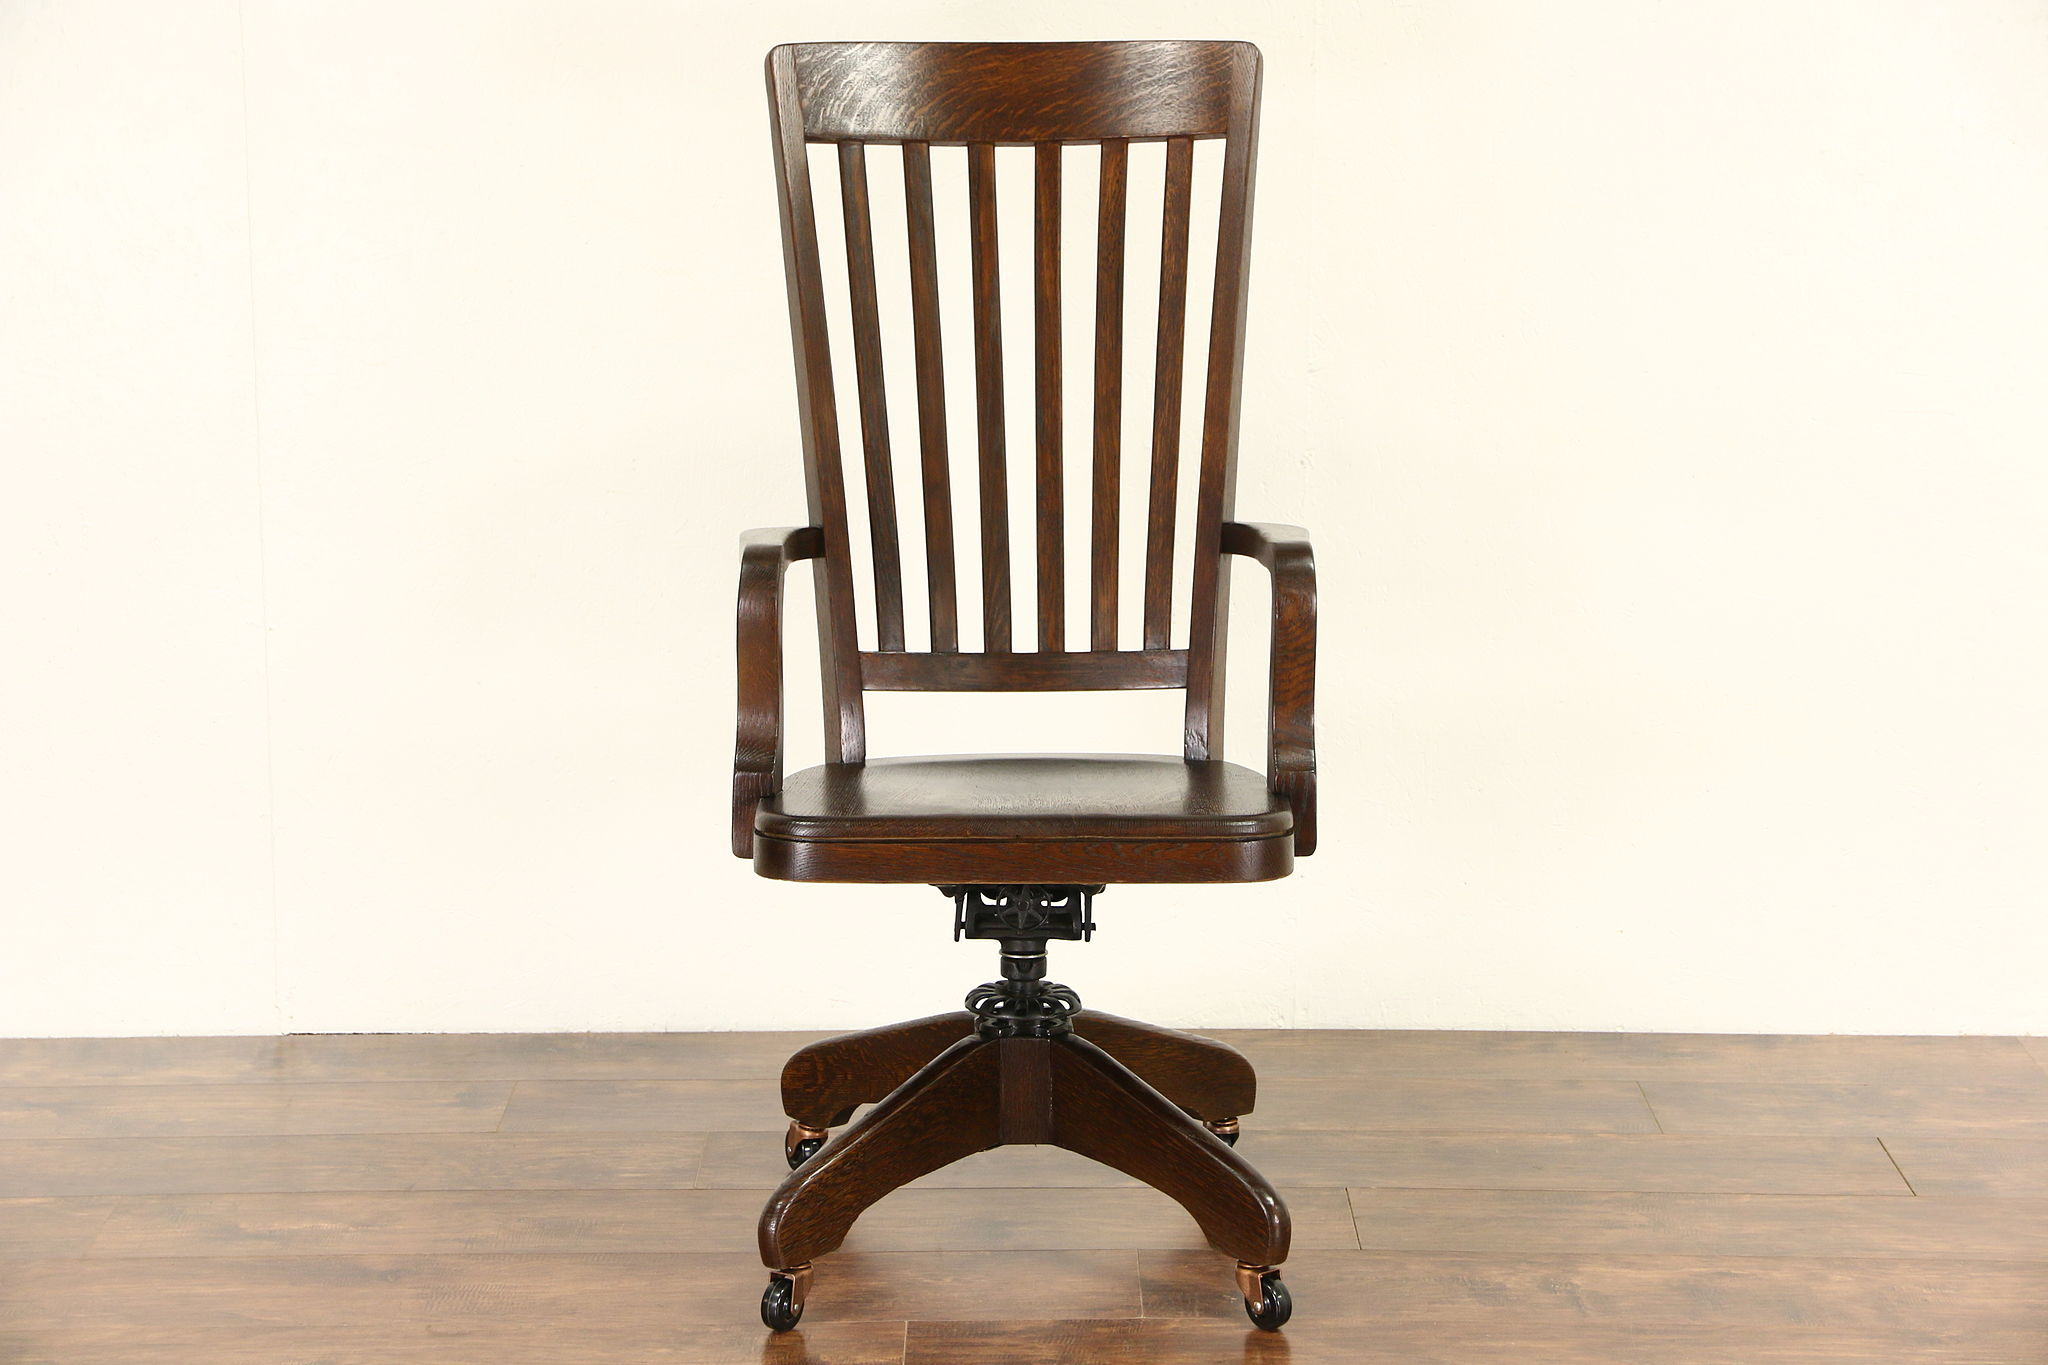 Antique adjustable high chair - Oak Antique 1900 High Back Swivel Adjustable Library Or Office Desk Chair